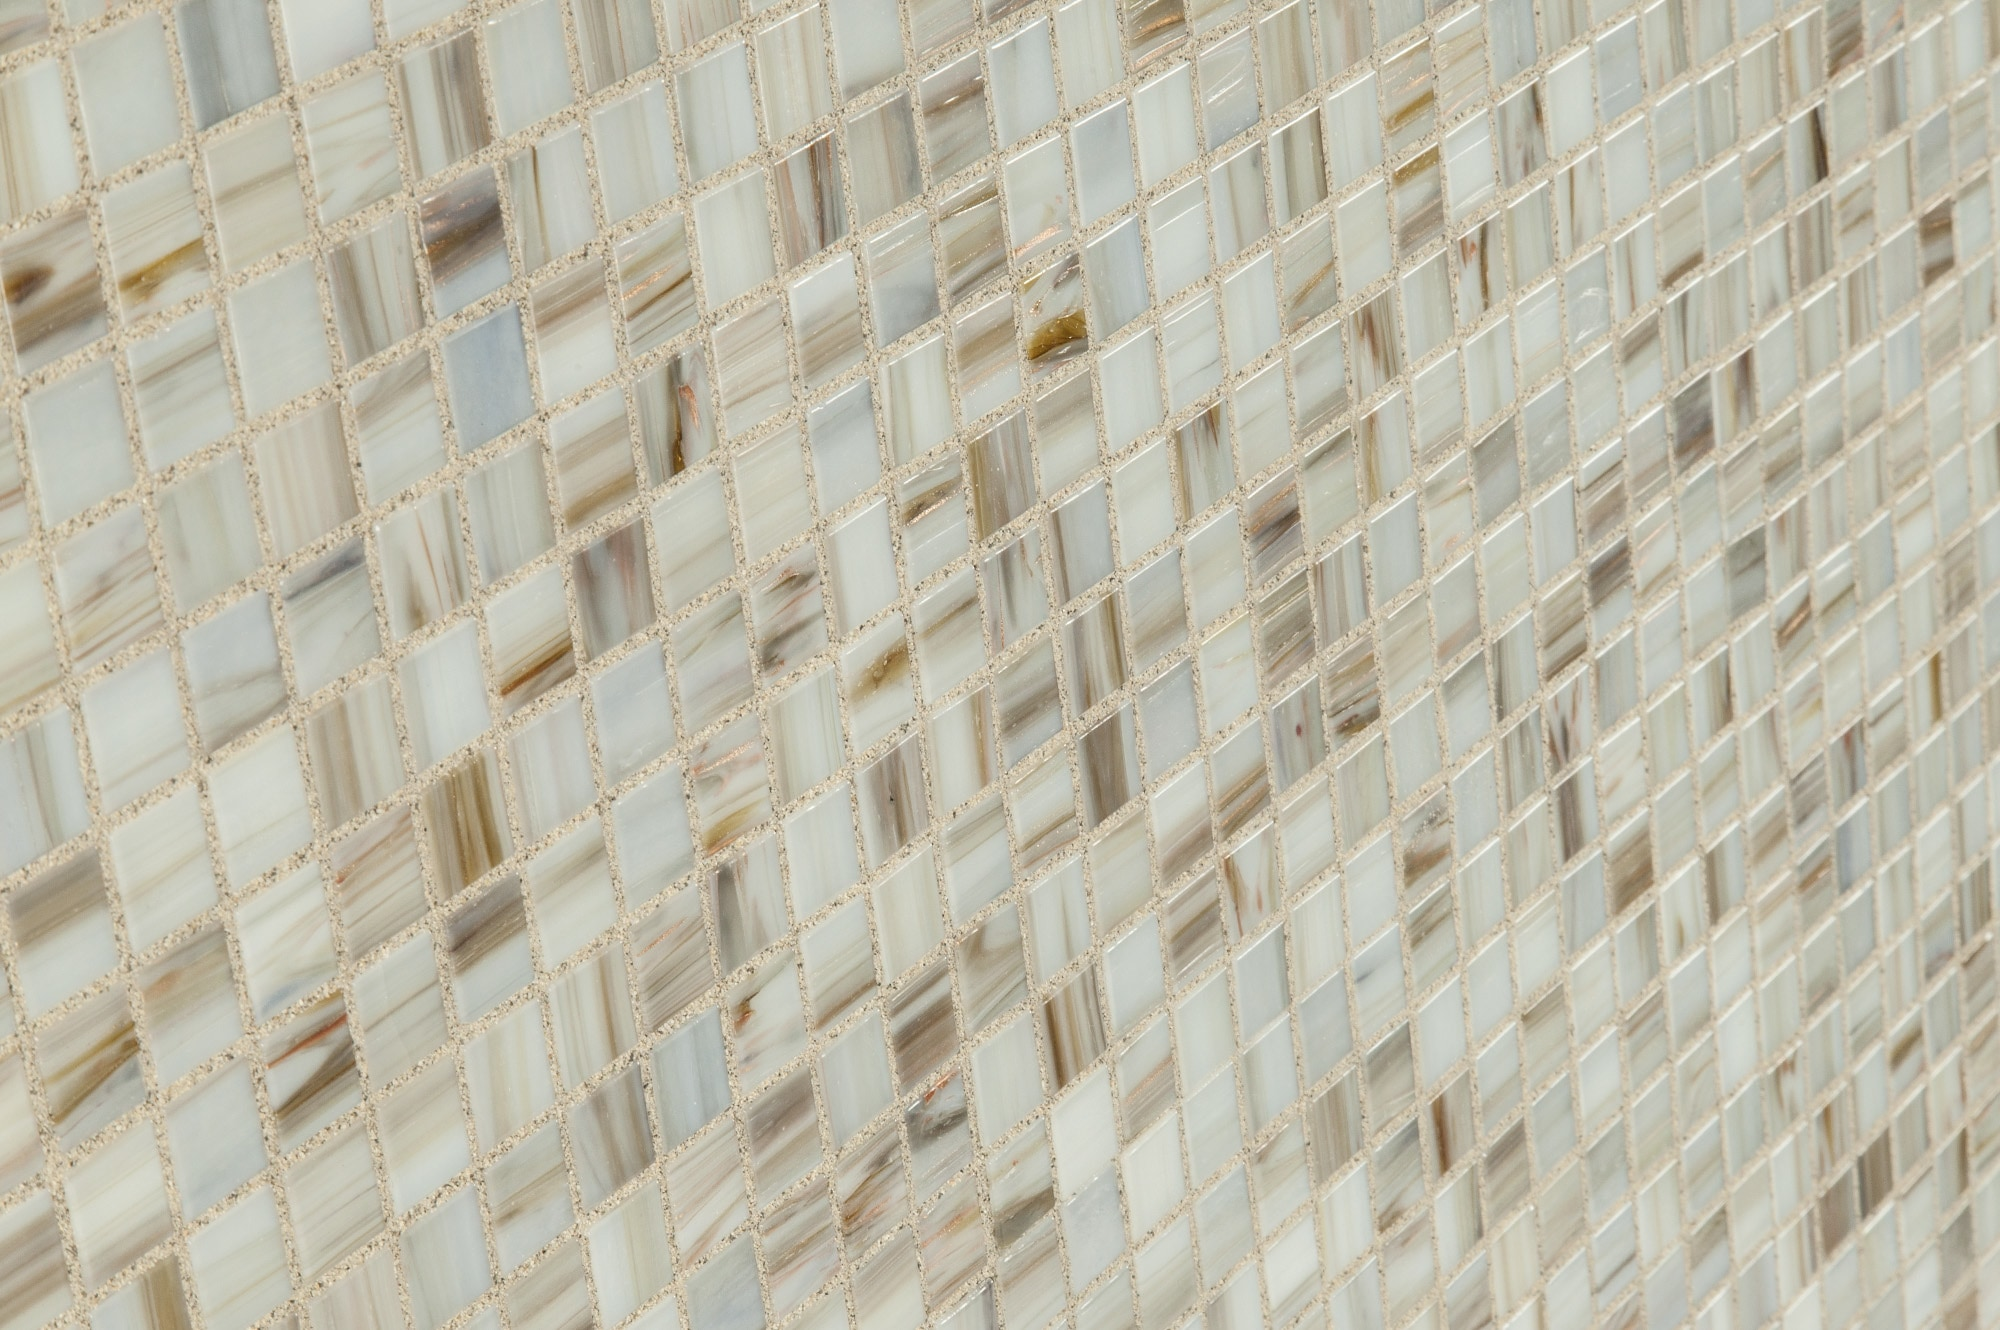 Glass Mosaic - FREE Samples Available at BuildDirect®